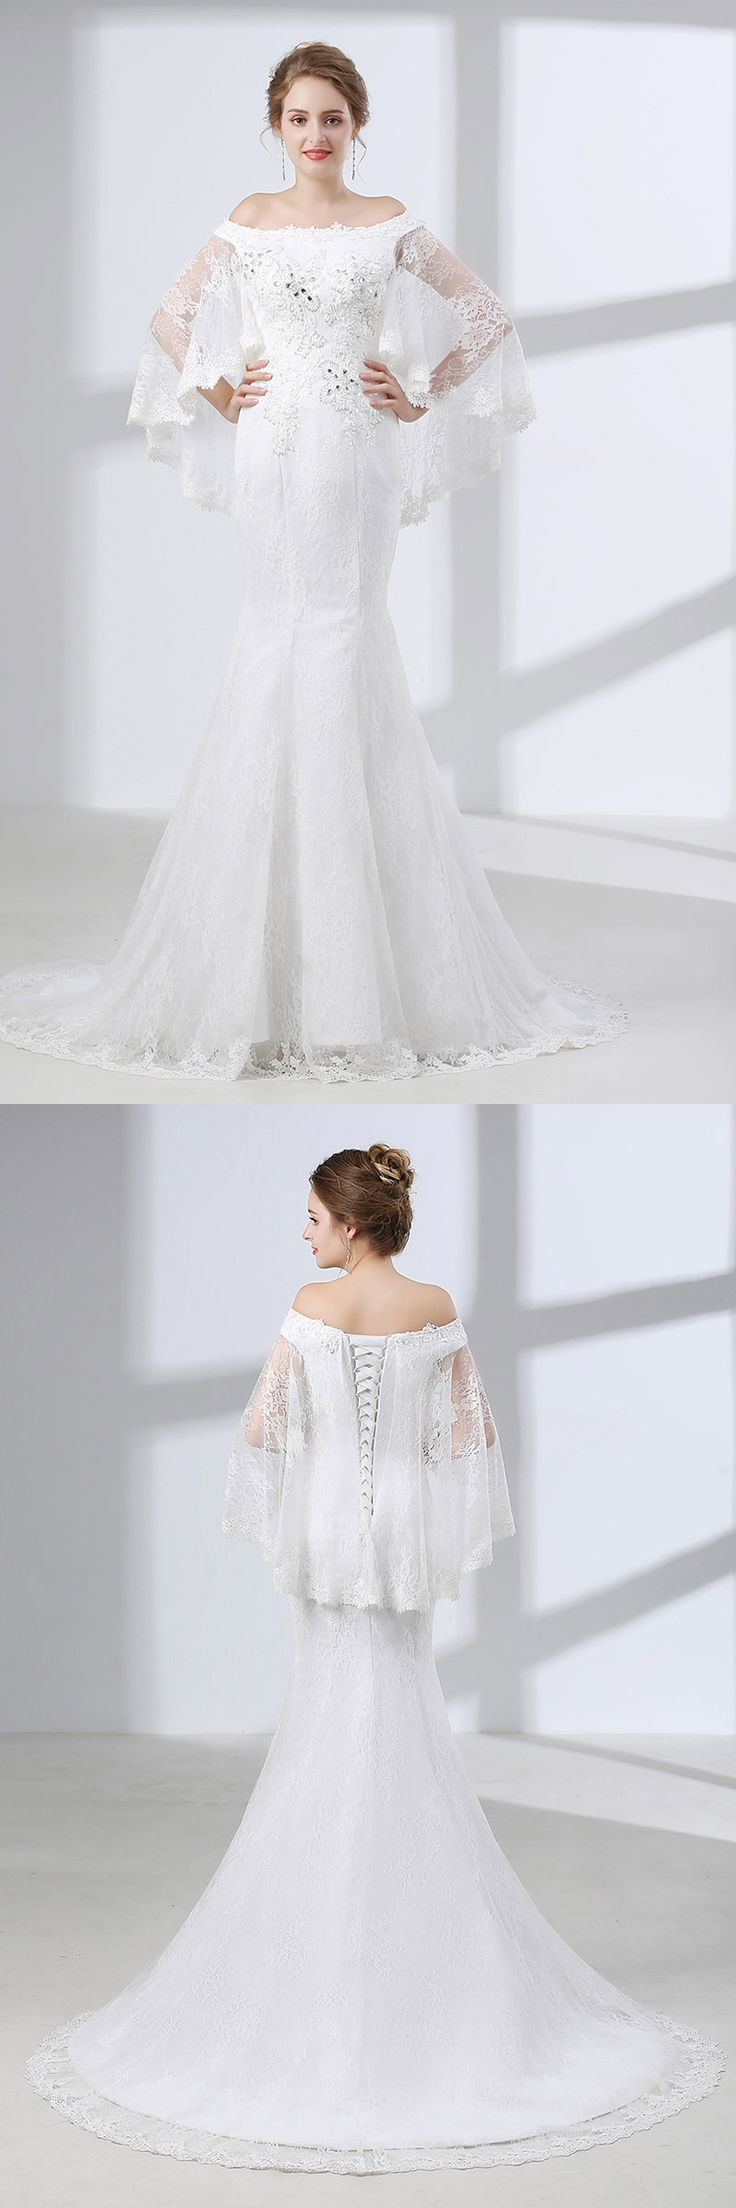 Only $185, Lace Wedding Dresses Off Shoulder Petite Trumpet Wedding Dress All Lace With Cape #CH6649 at #GemGrace. View more special Wedding Dresses,Mermaid Wedding Dresses,Lace Wedding Dresses,Country Wedding Dresses now? GemGrace is a solution for those who want to buy delicate gowns with affordable prices, a solution for those who have unique ideas about their gowns. Find out more>>